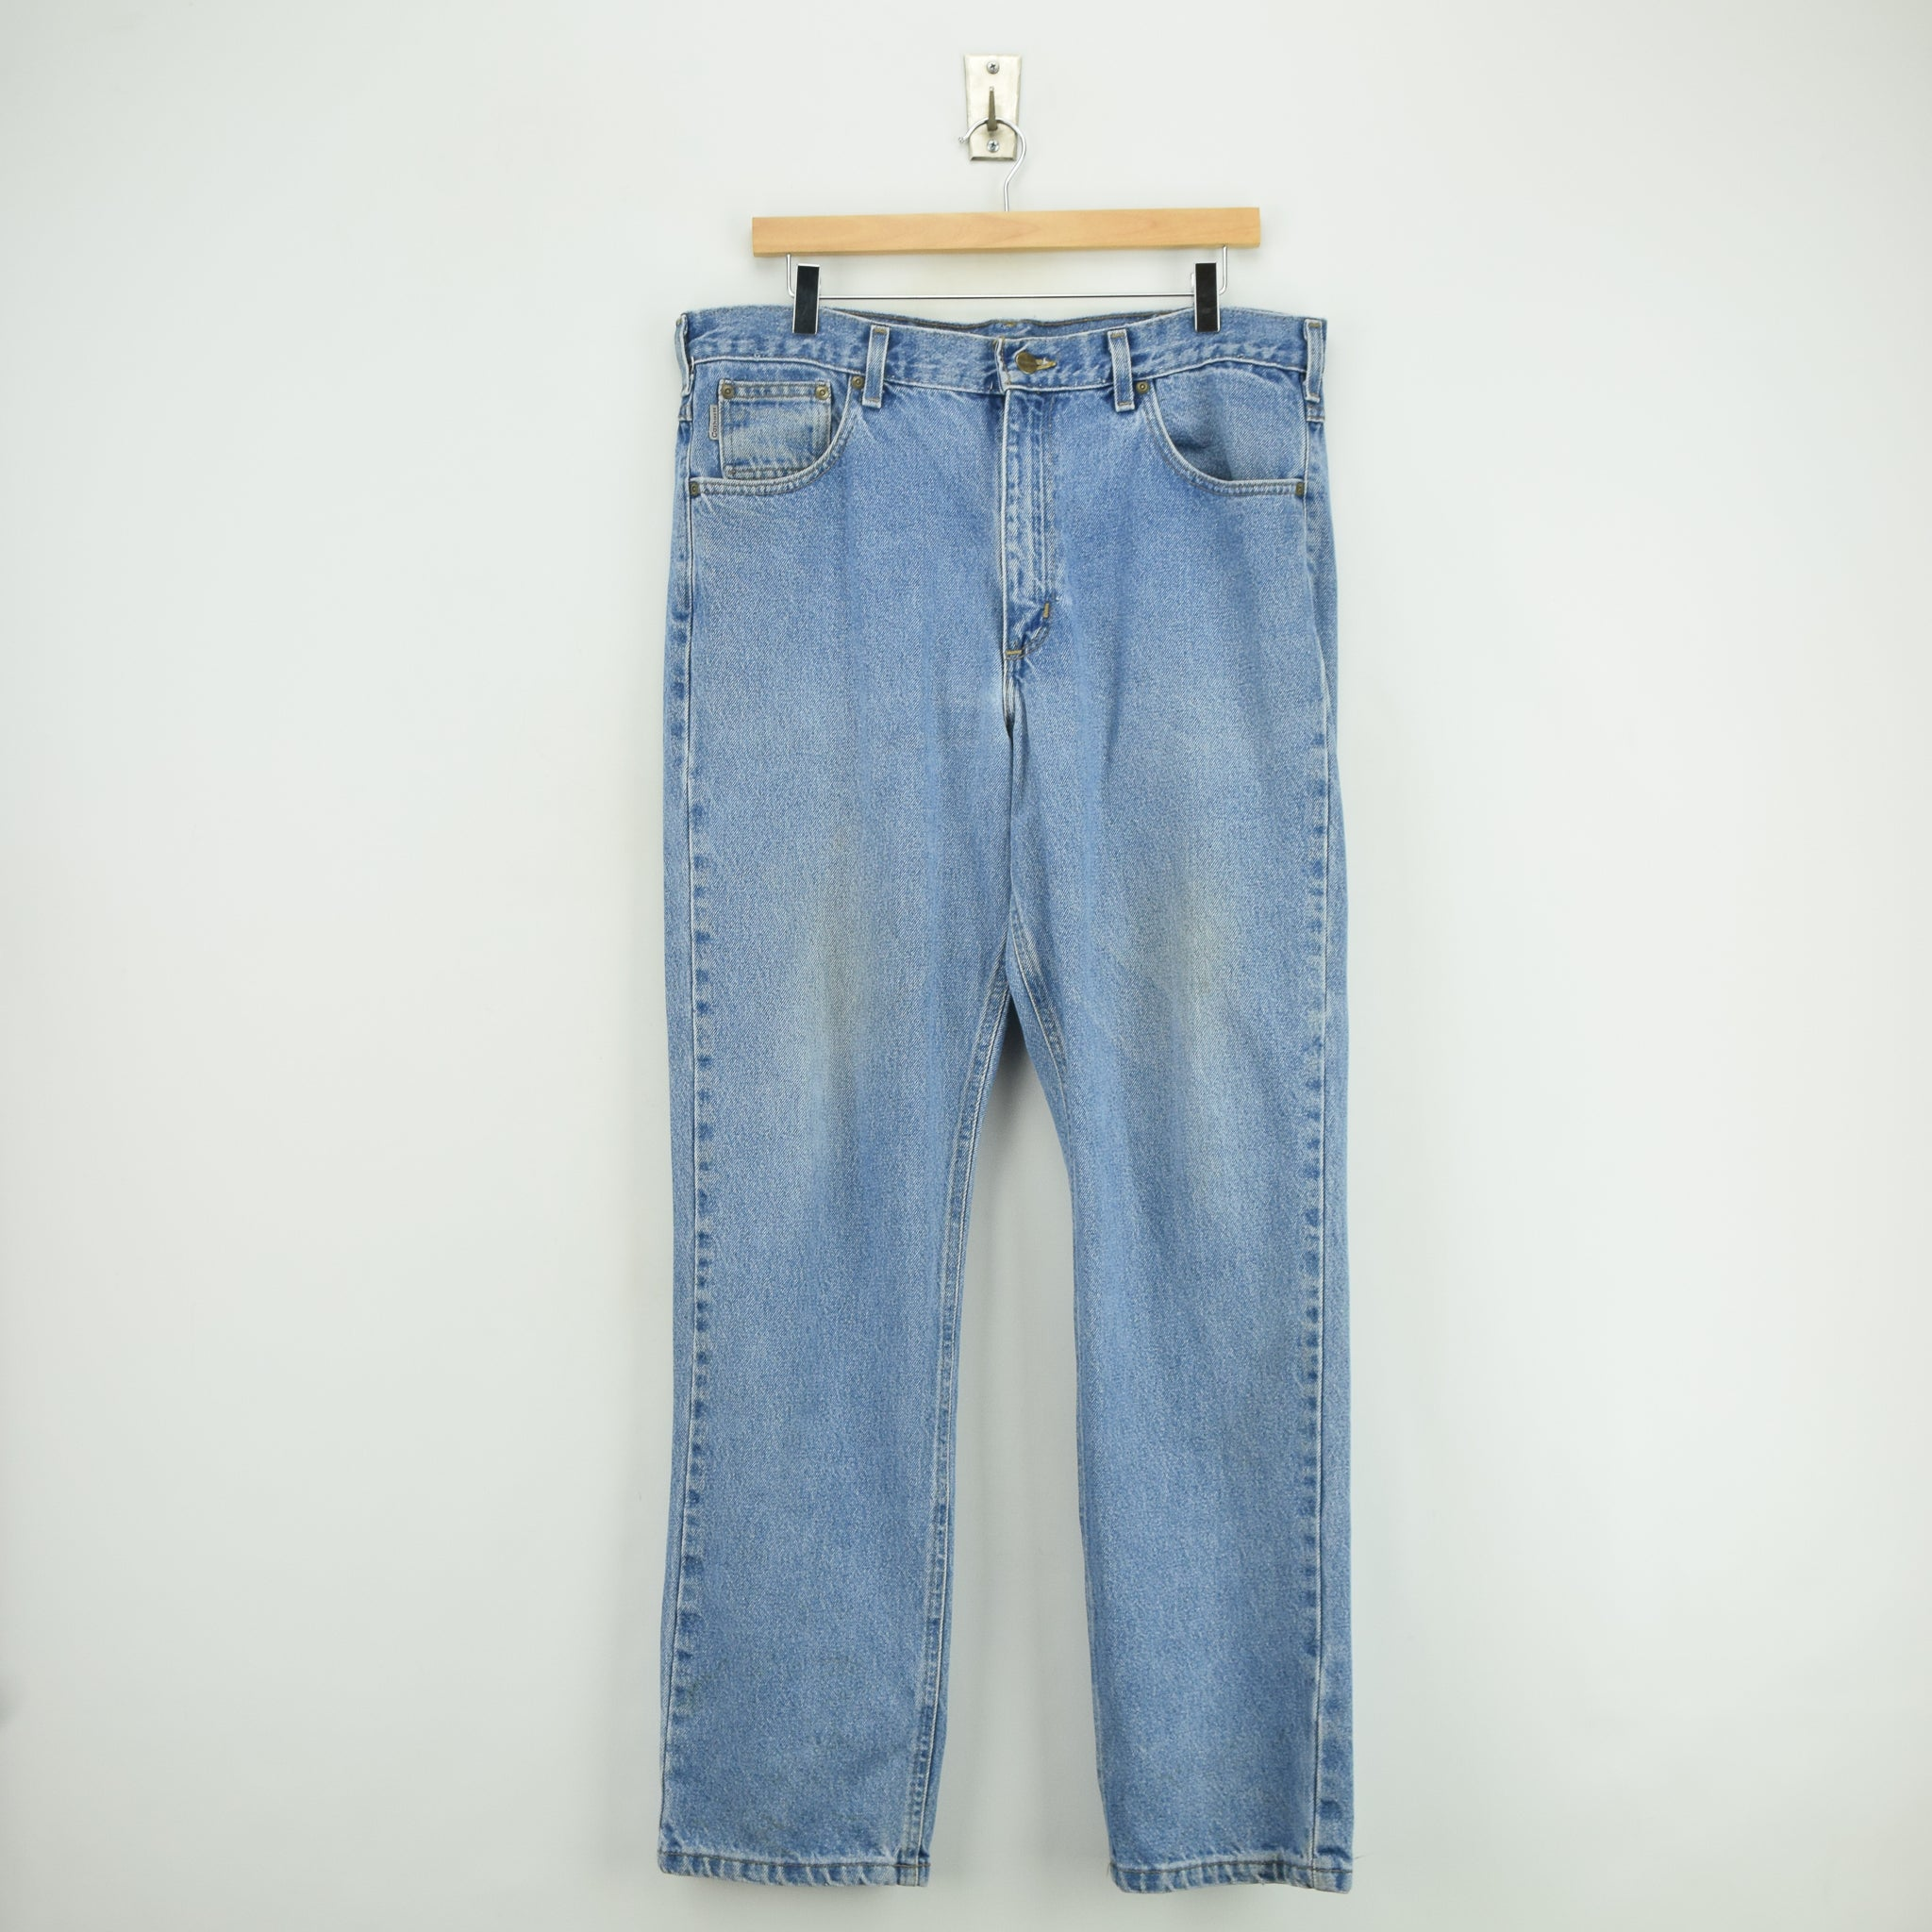 Vintage Carhartt Blue Denim Jeans Work Pants 34 W 32 L front